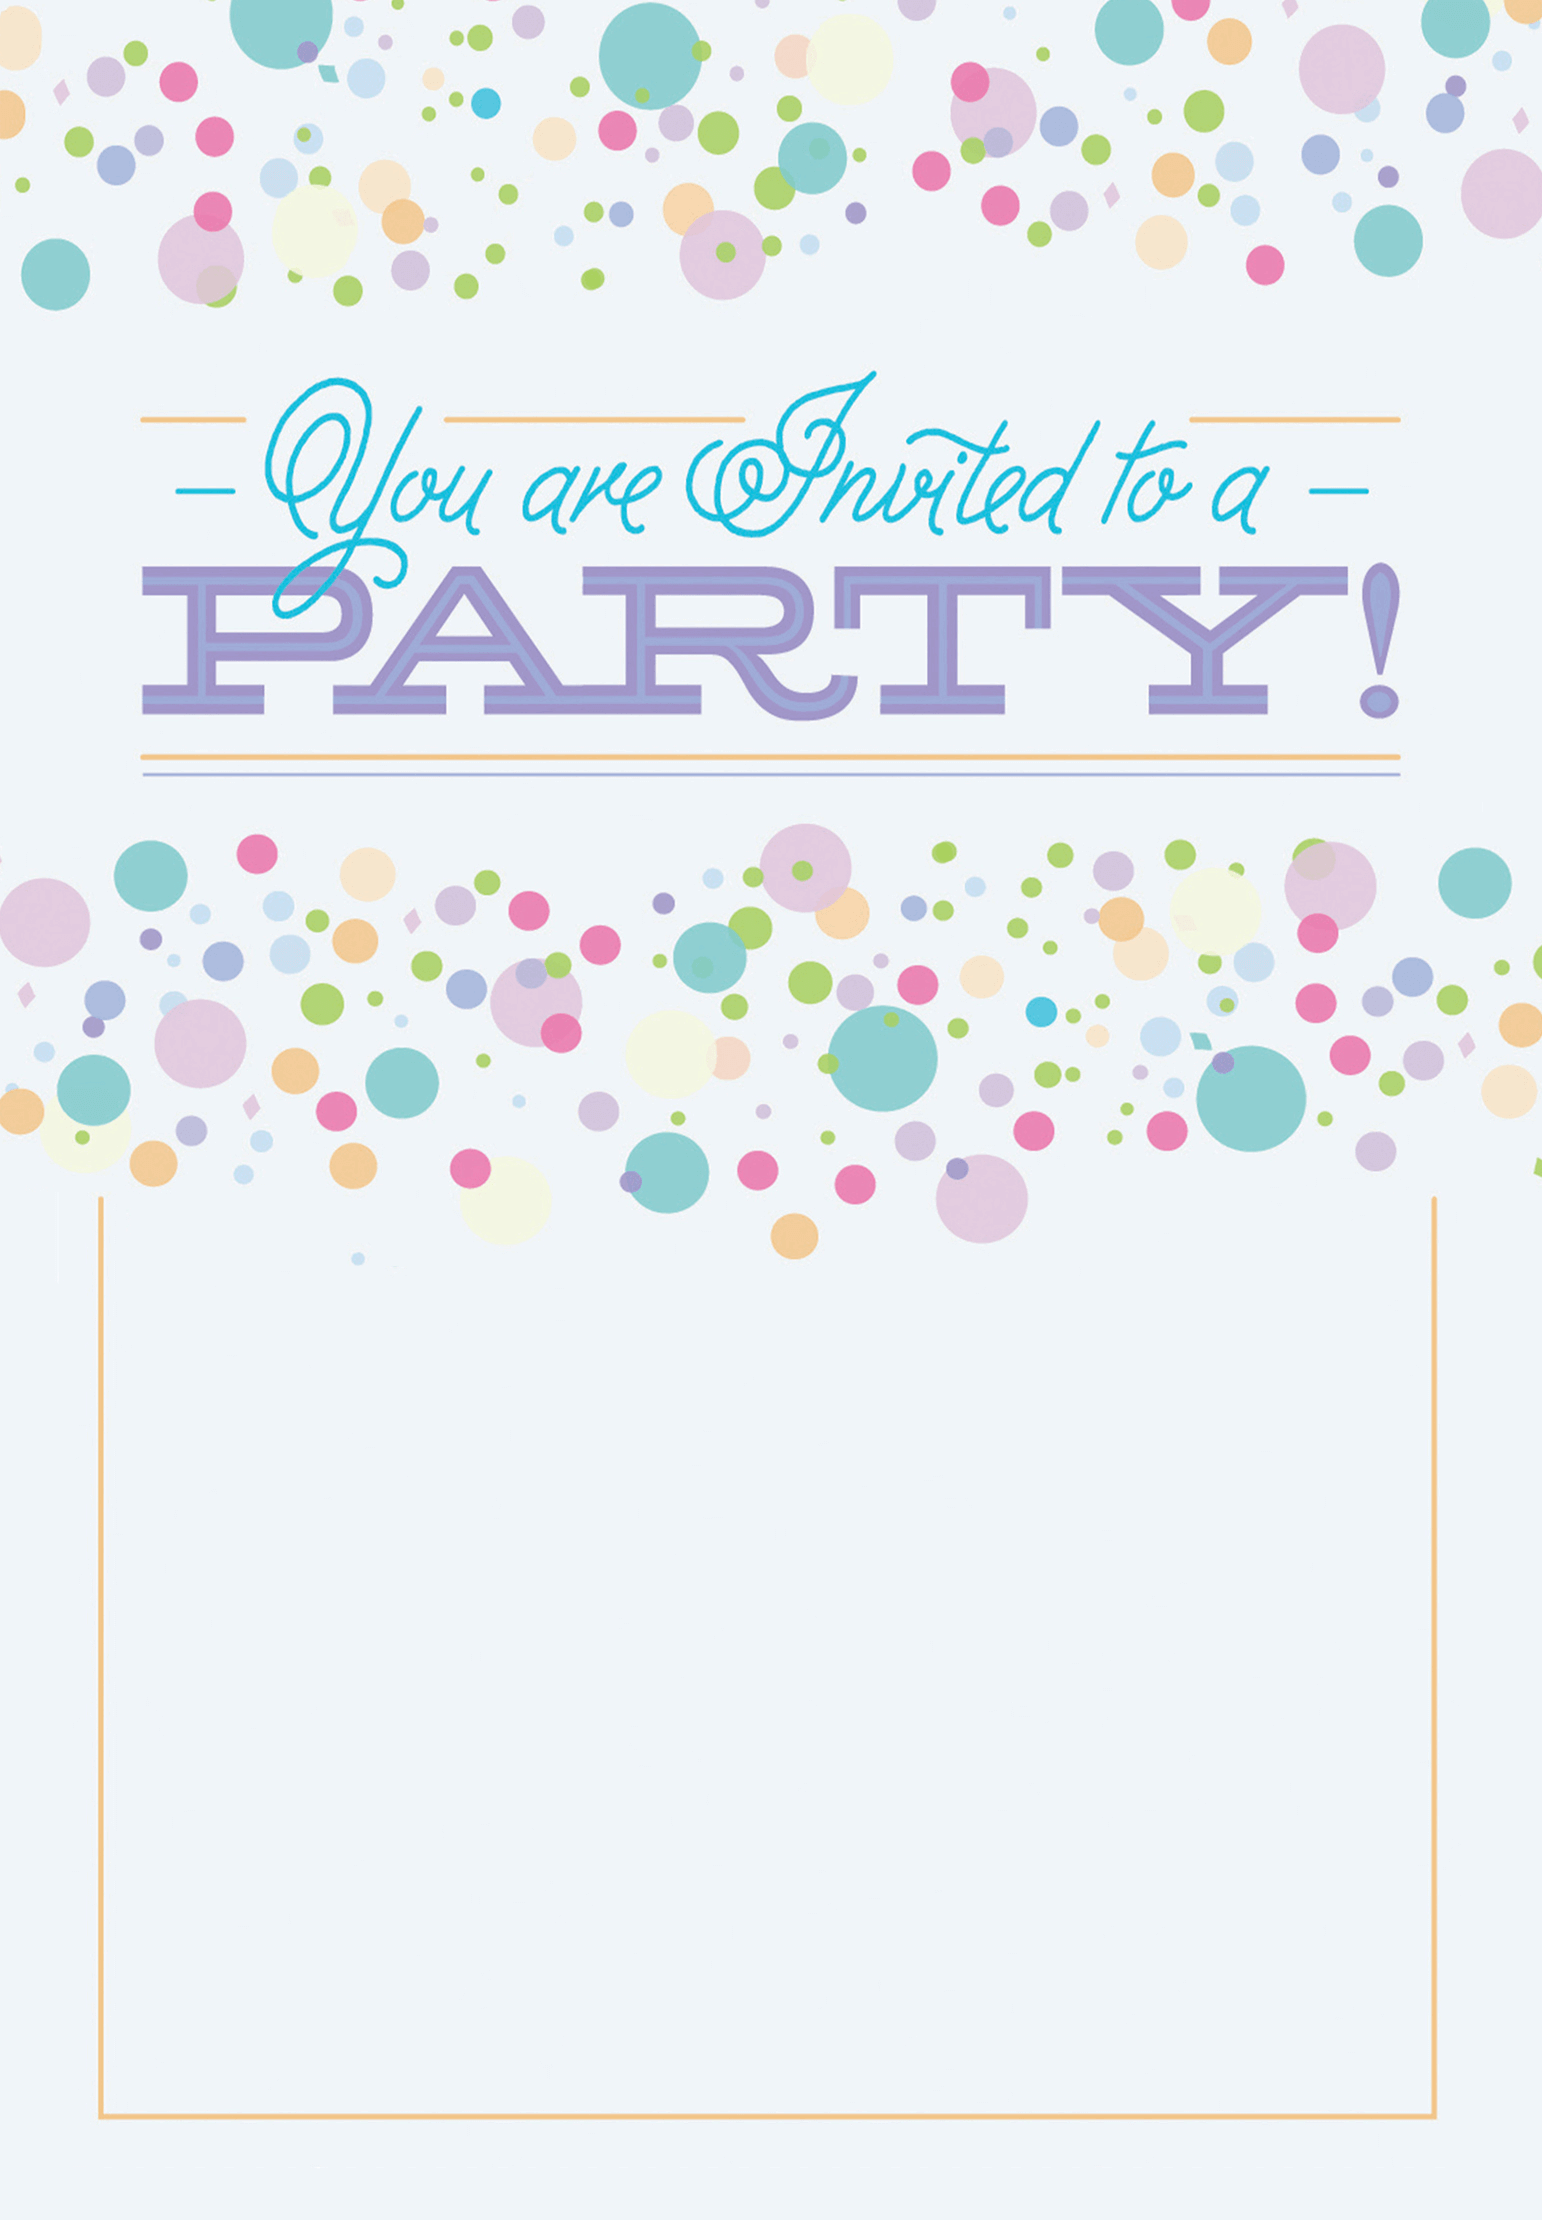 Exhilarating image for free printable birthday invitation templates